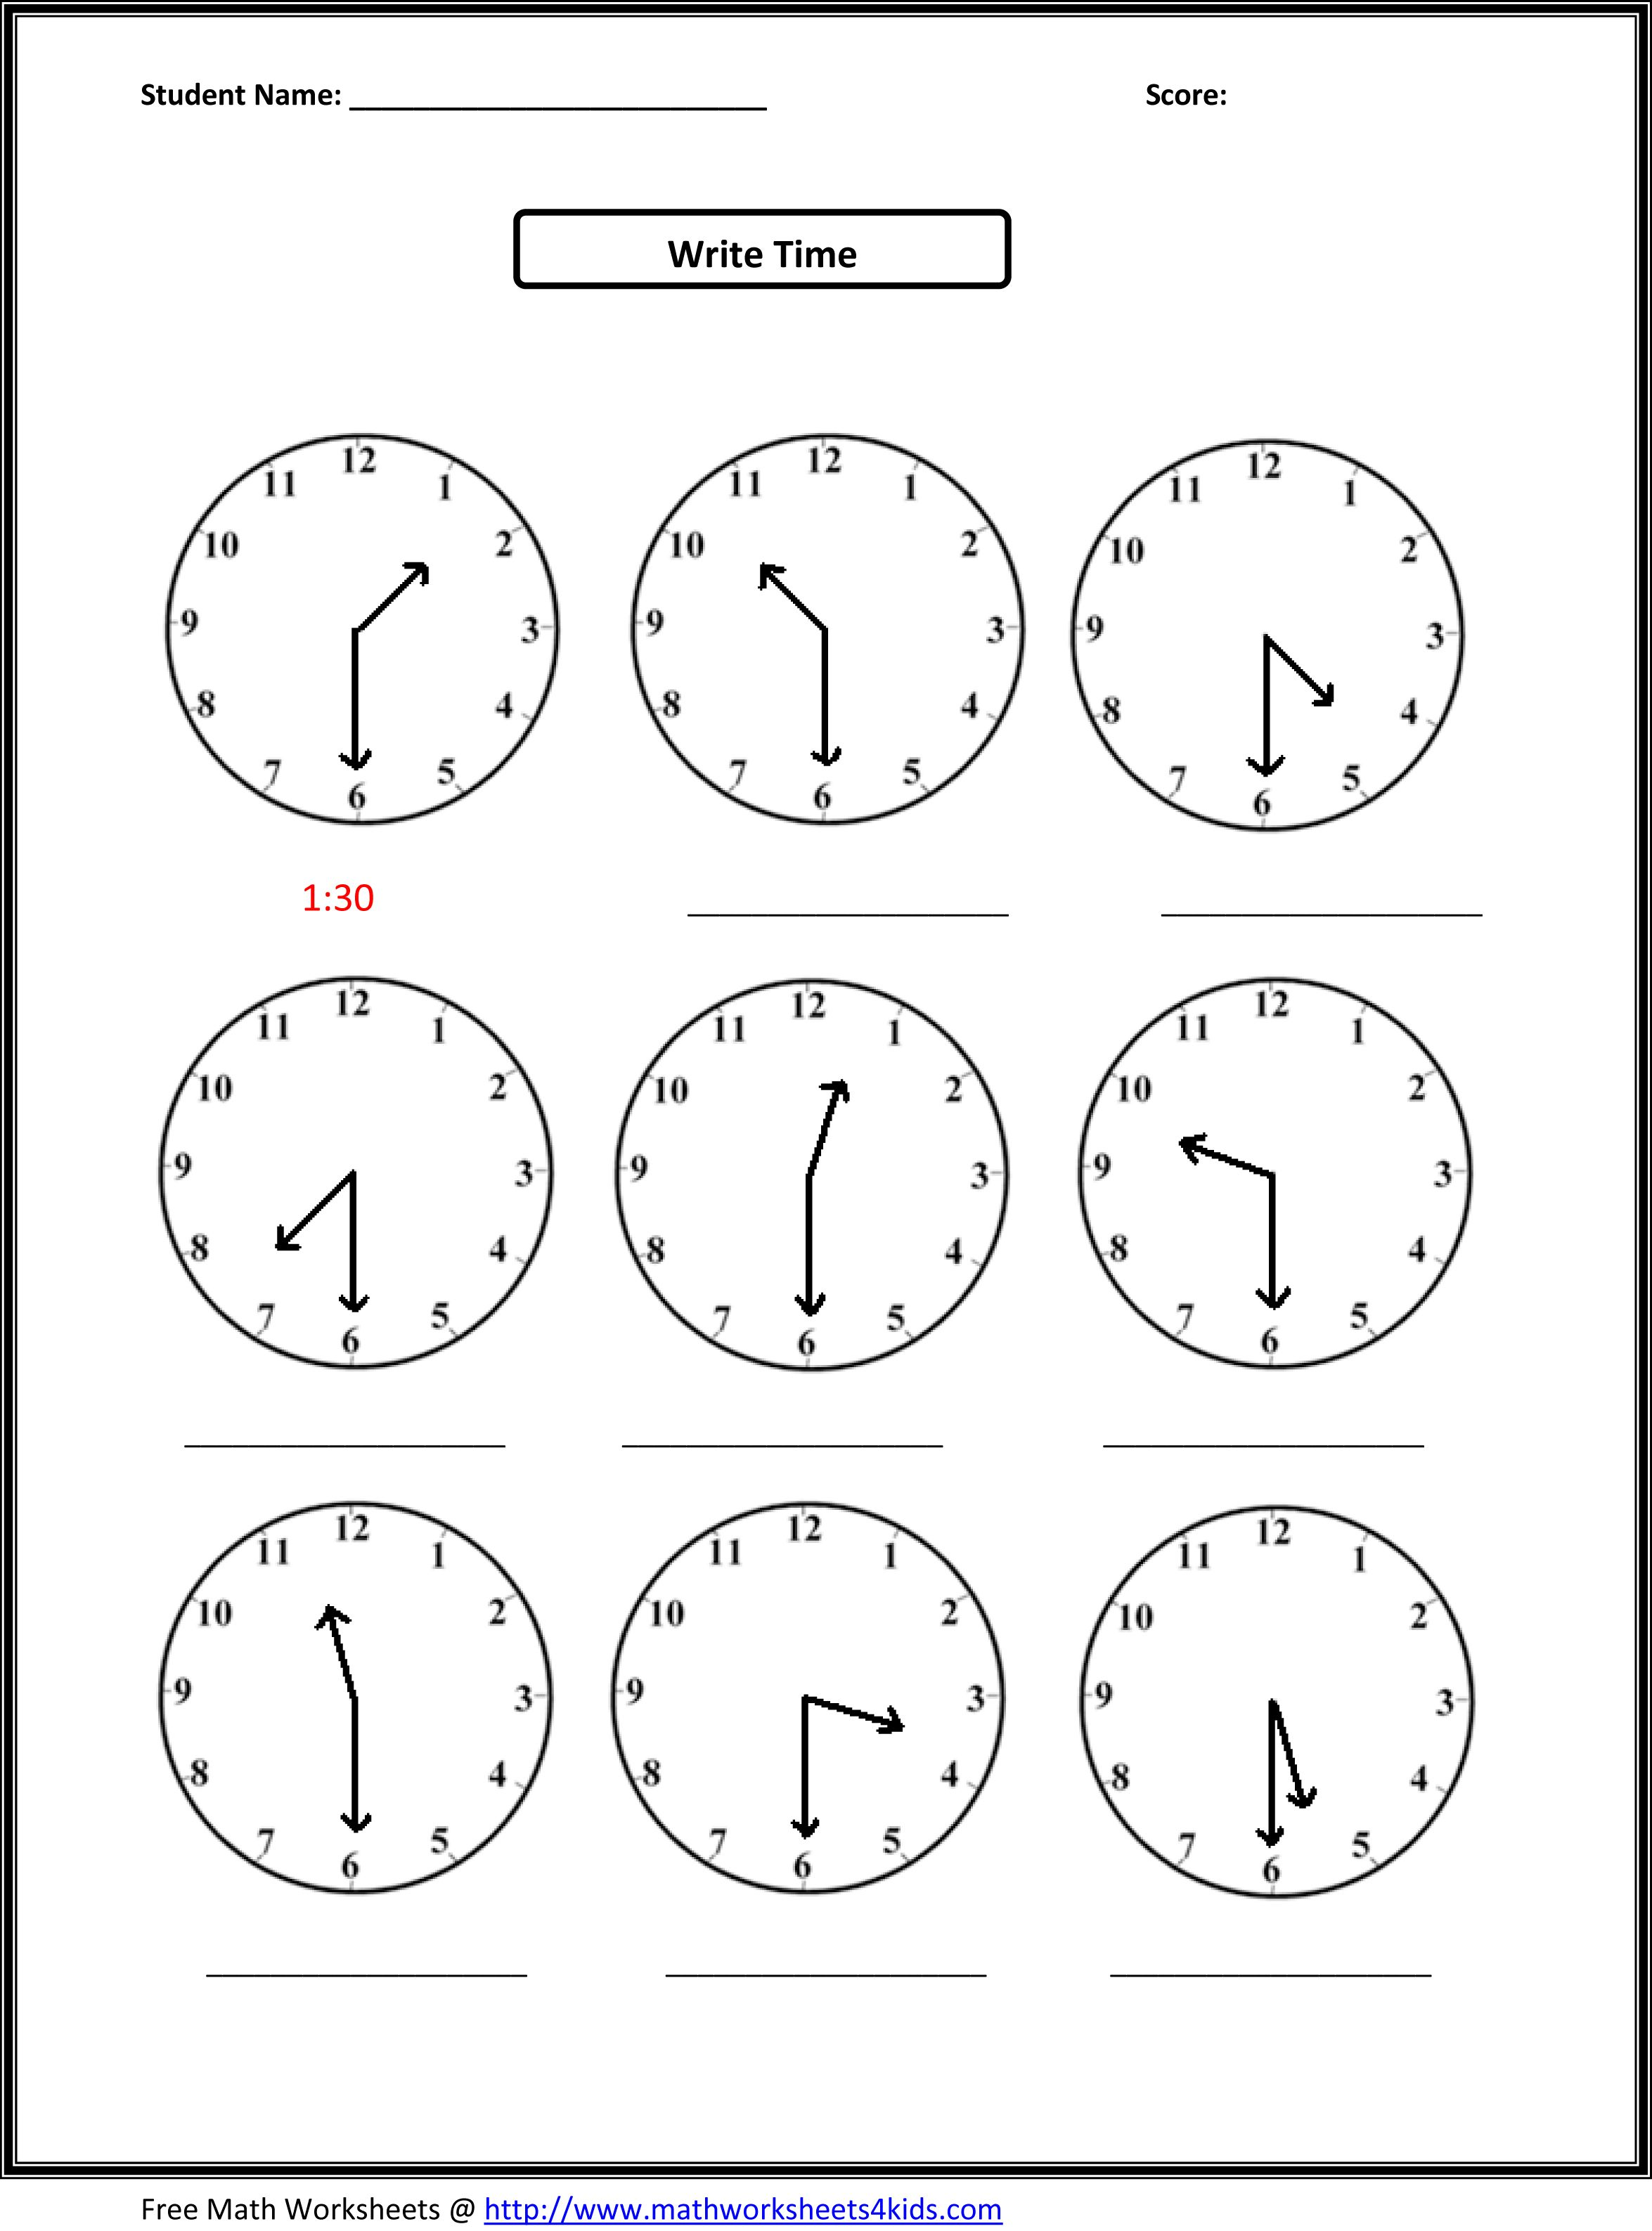 Weirdmailus  Wonderful Worksheet On Time For Grade   Reocurent With Fair Free Printable Telling Time Worksheets Nd Grade  Reocurent With Comely Worksheets For First Grade Reading Also Mixed Number Word Problems Worksheets In Addition Fraction Worksheets For Th Grade And Blank Skeleton Worksheet As Well As Worksheets With Answers Additionally Proportion Word Problem Worksheet From Reocurentcom With Weirdmailus  Fair Worksheet On Time For Grade   Reocurent With Comely Free Printable Telling Time Worksheets Nd Grade  Reocurent And Wonderful Worksheets For First Grade Reading Also Mixed Number Word Problems Worksheets In Addition Fraction Worksheets For Th Grade From Reocurentcom